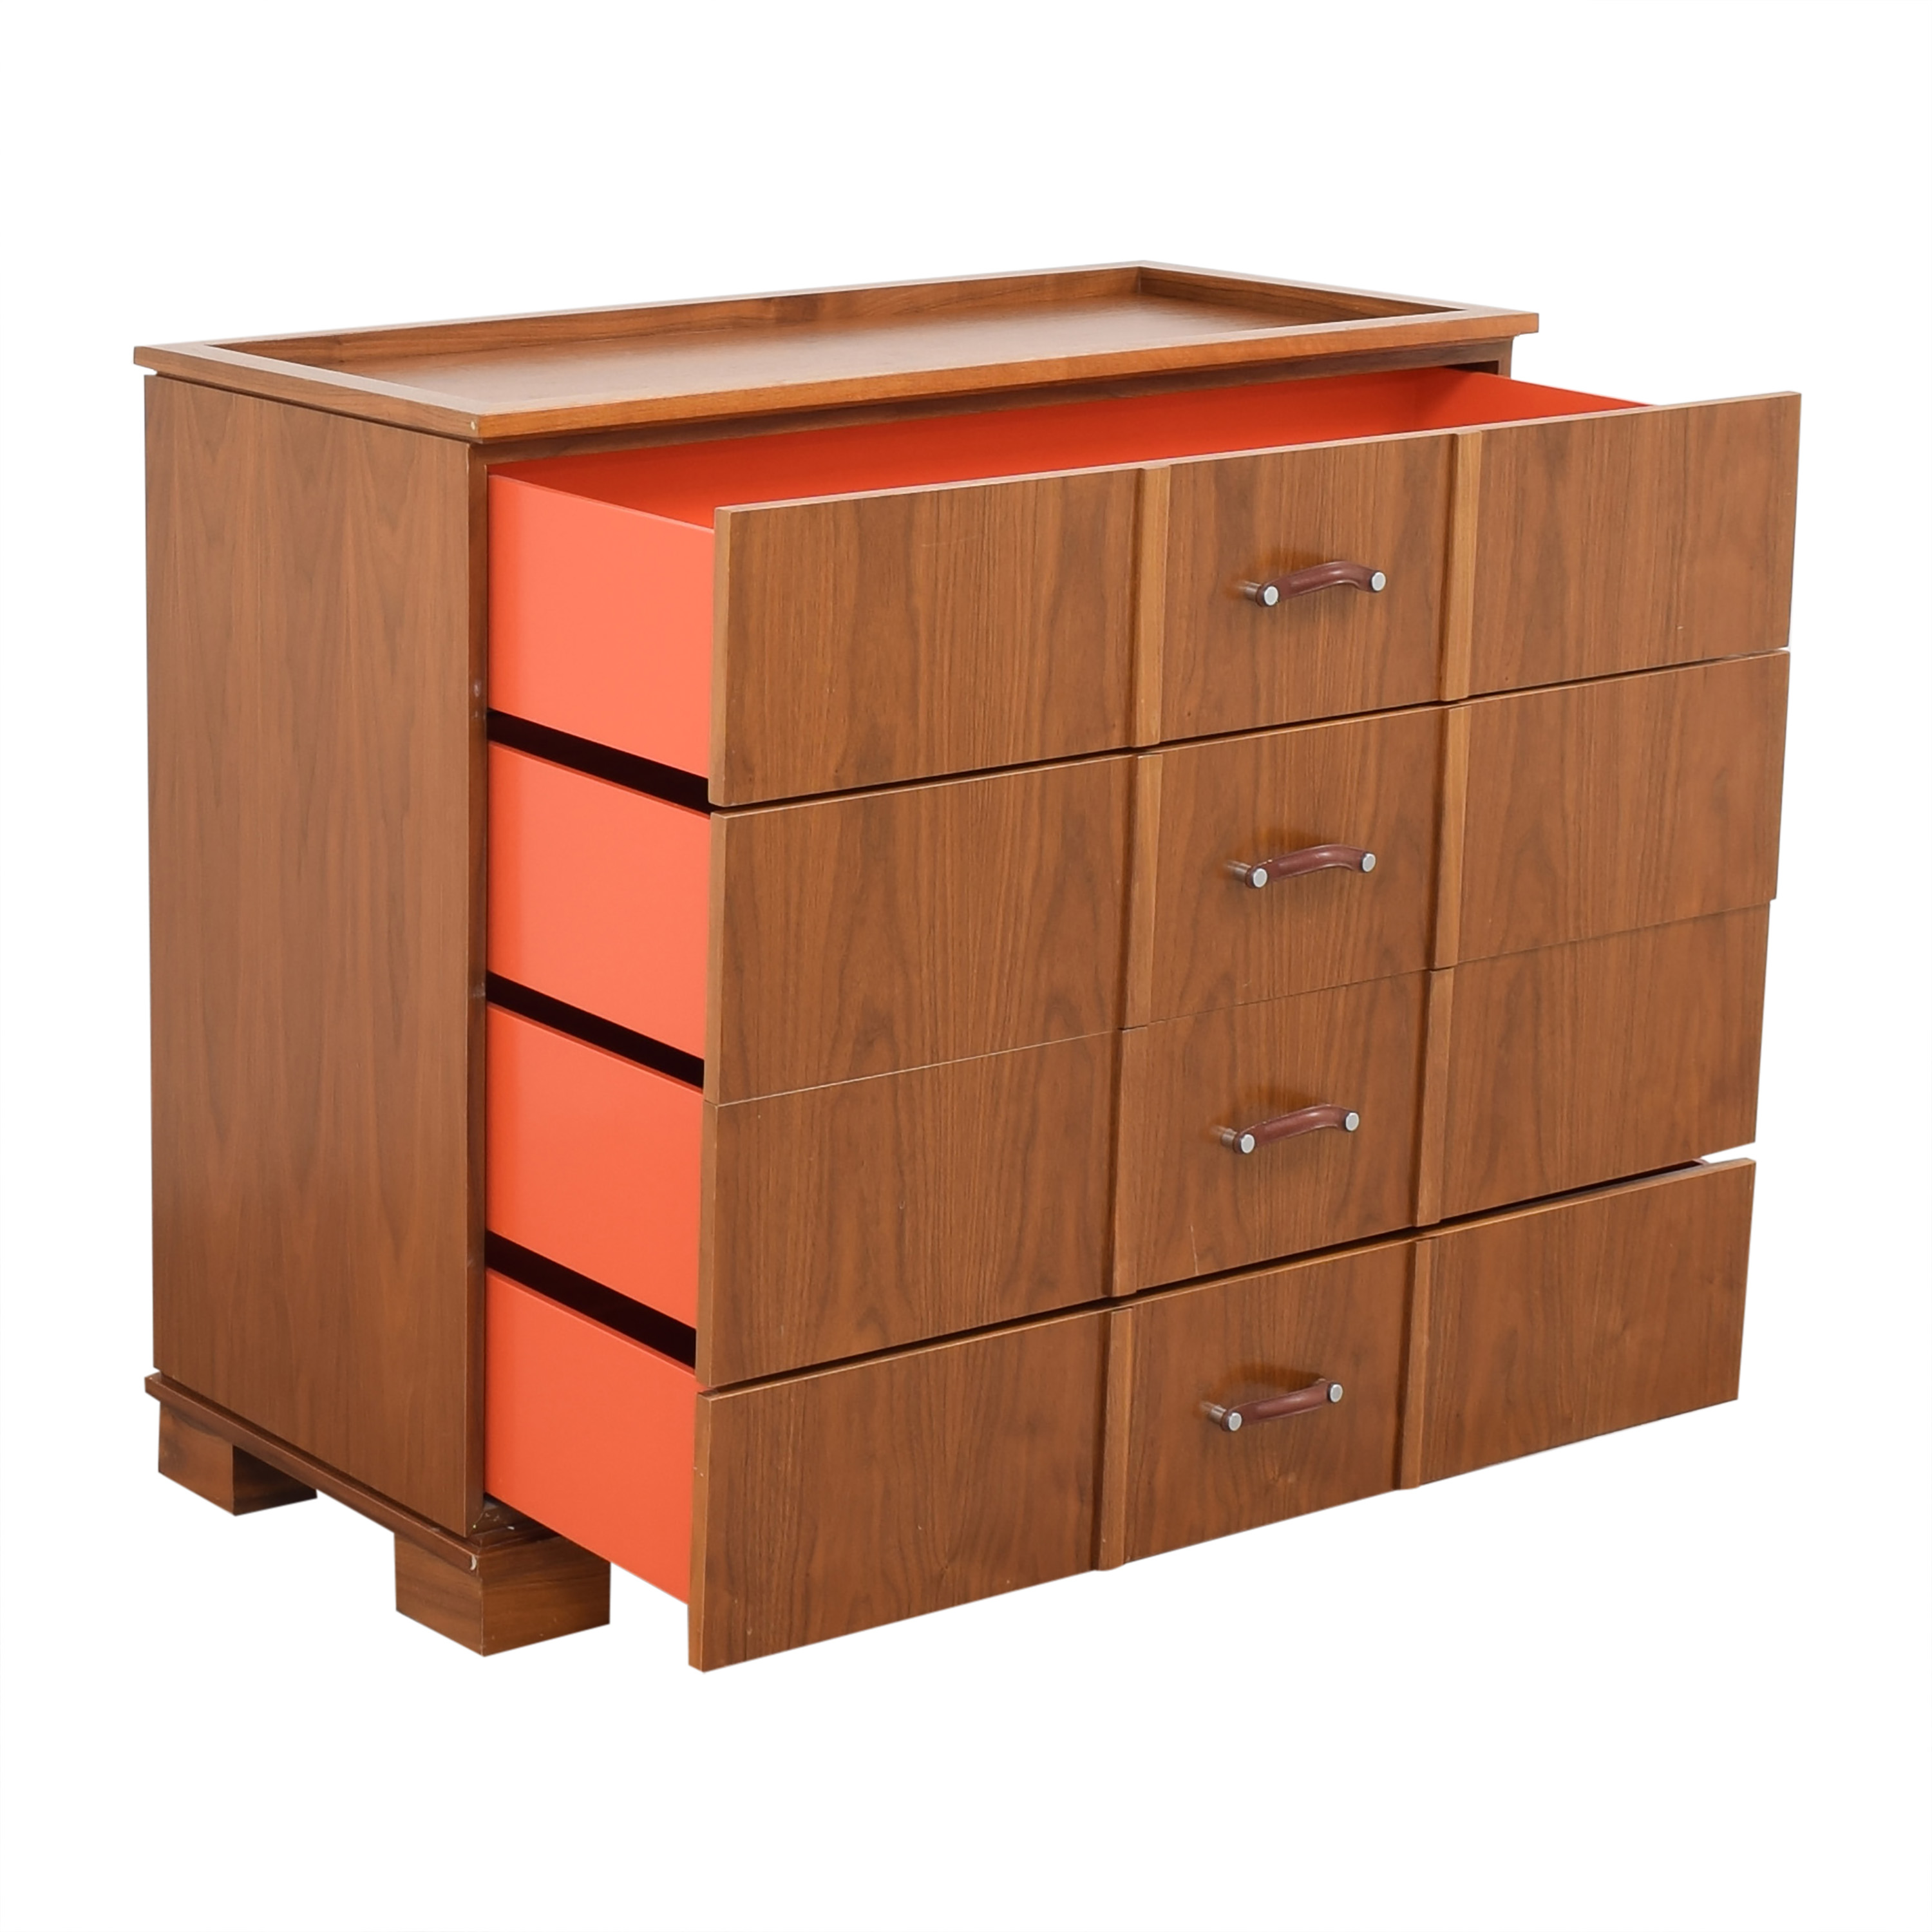 Ducduc Morgan 4 Drawer Dresser sale